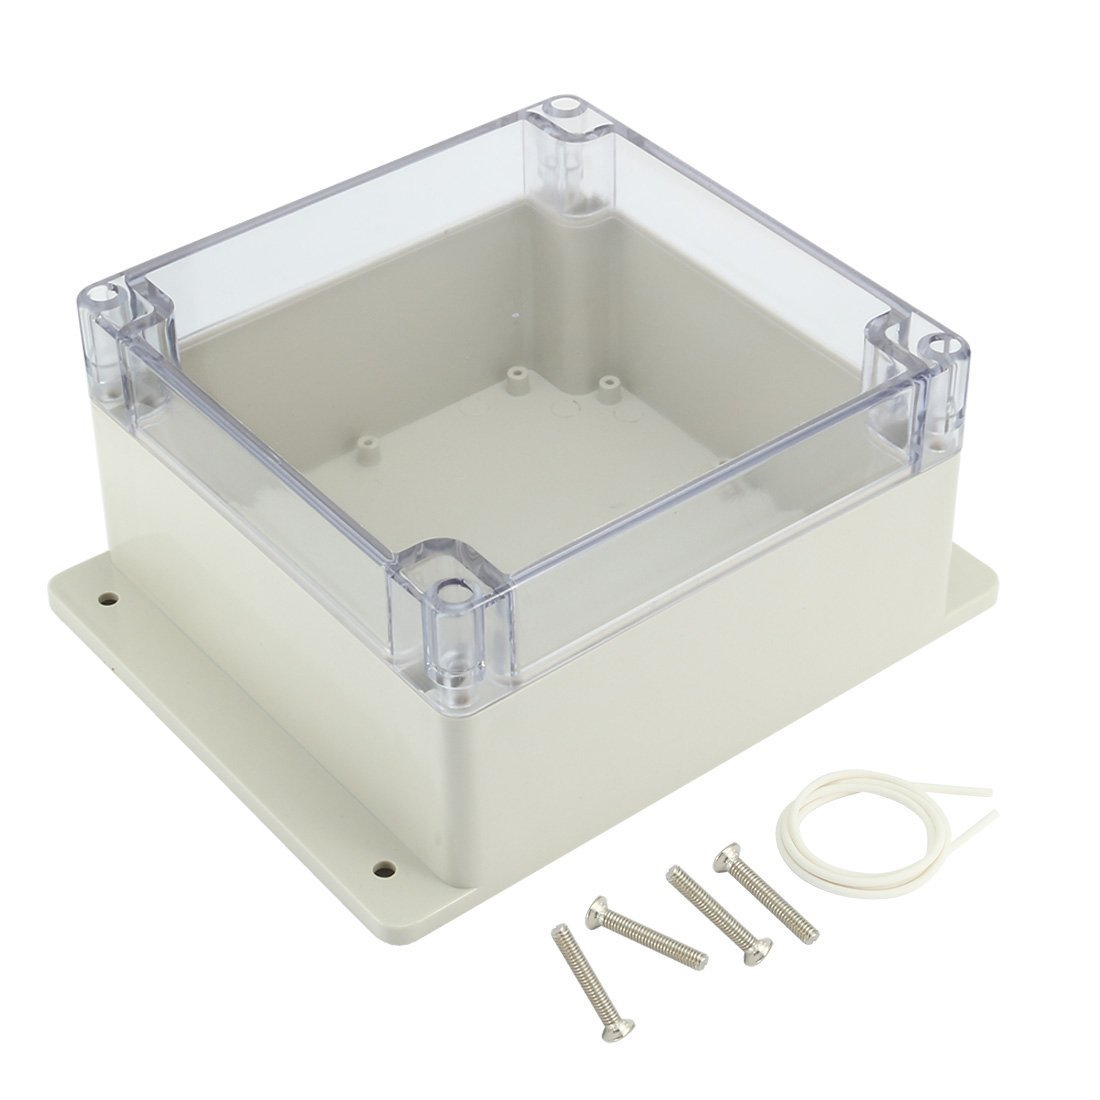 SODIAL 6.3 x 6.3 x 3.54 inch(160mmx160mmx90mm) ABS Junction Box Universal Project Enclosure with PC Transparent Cover